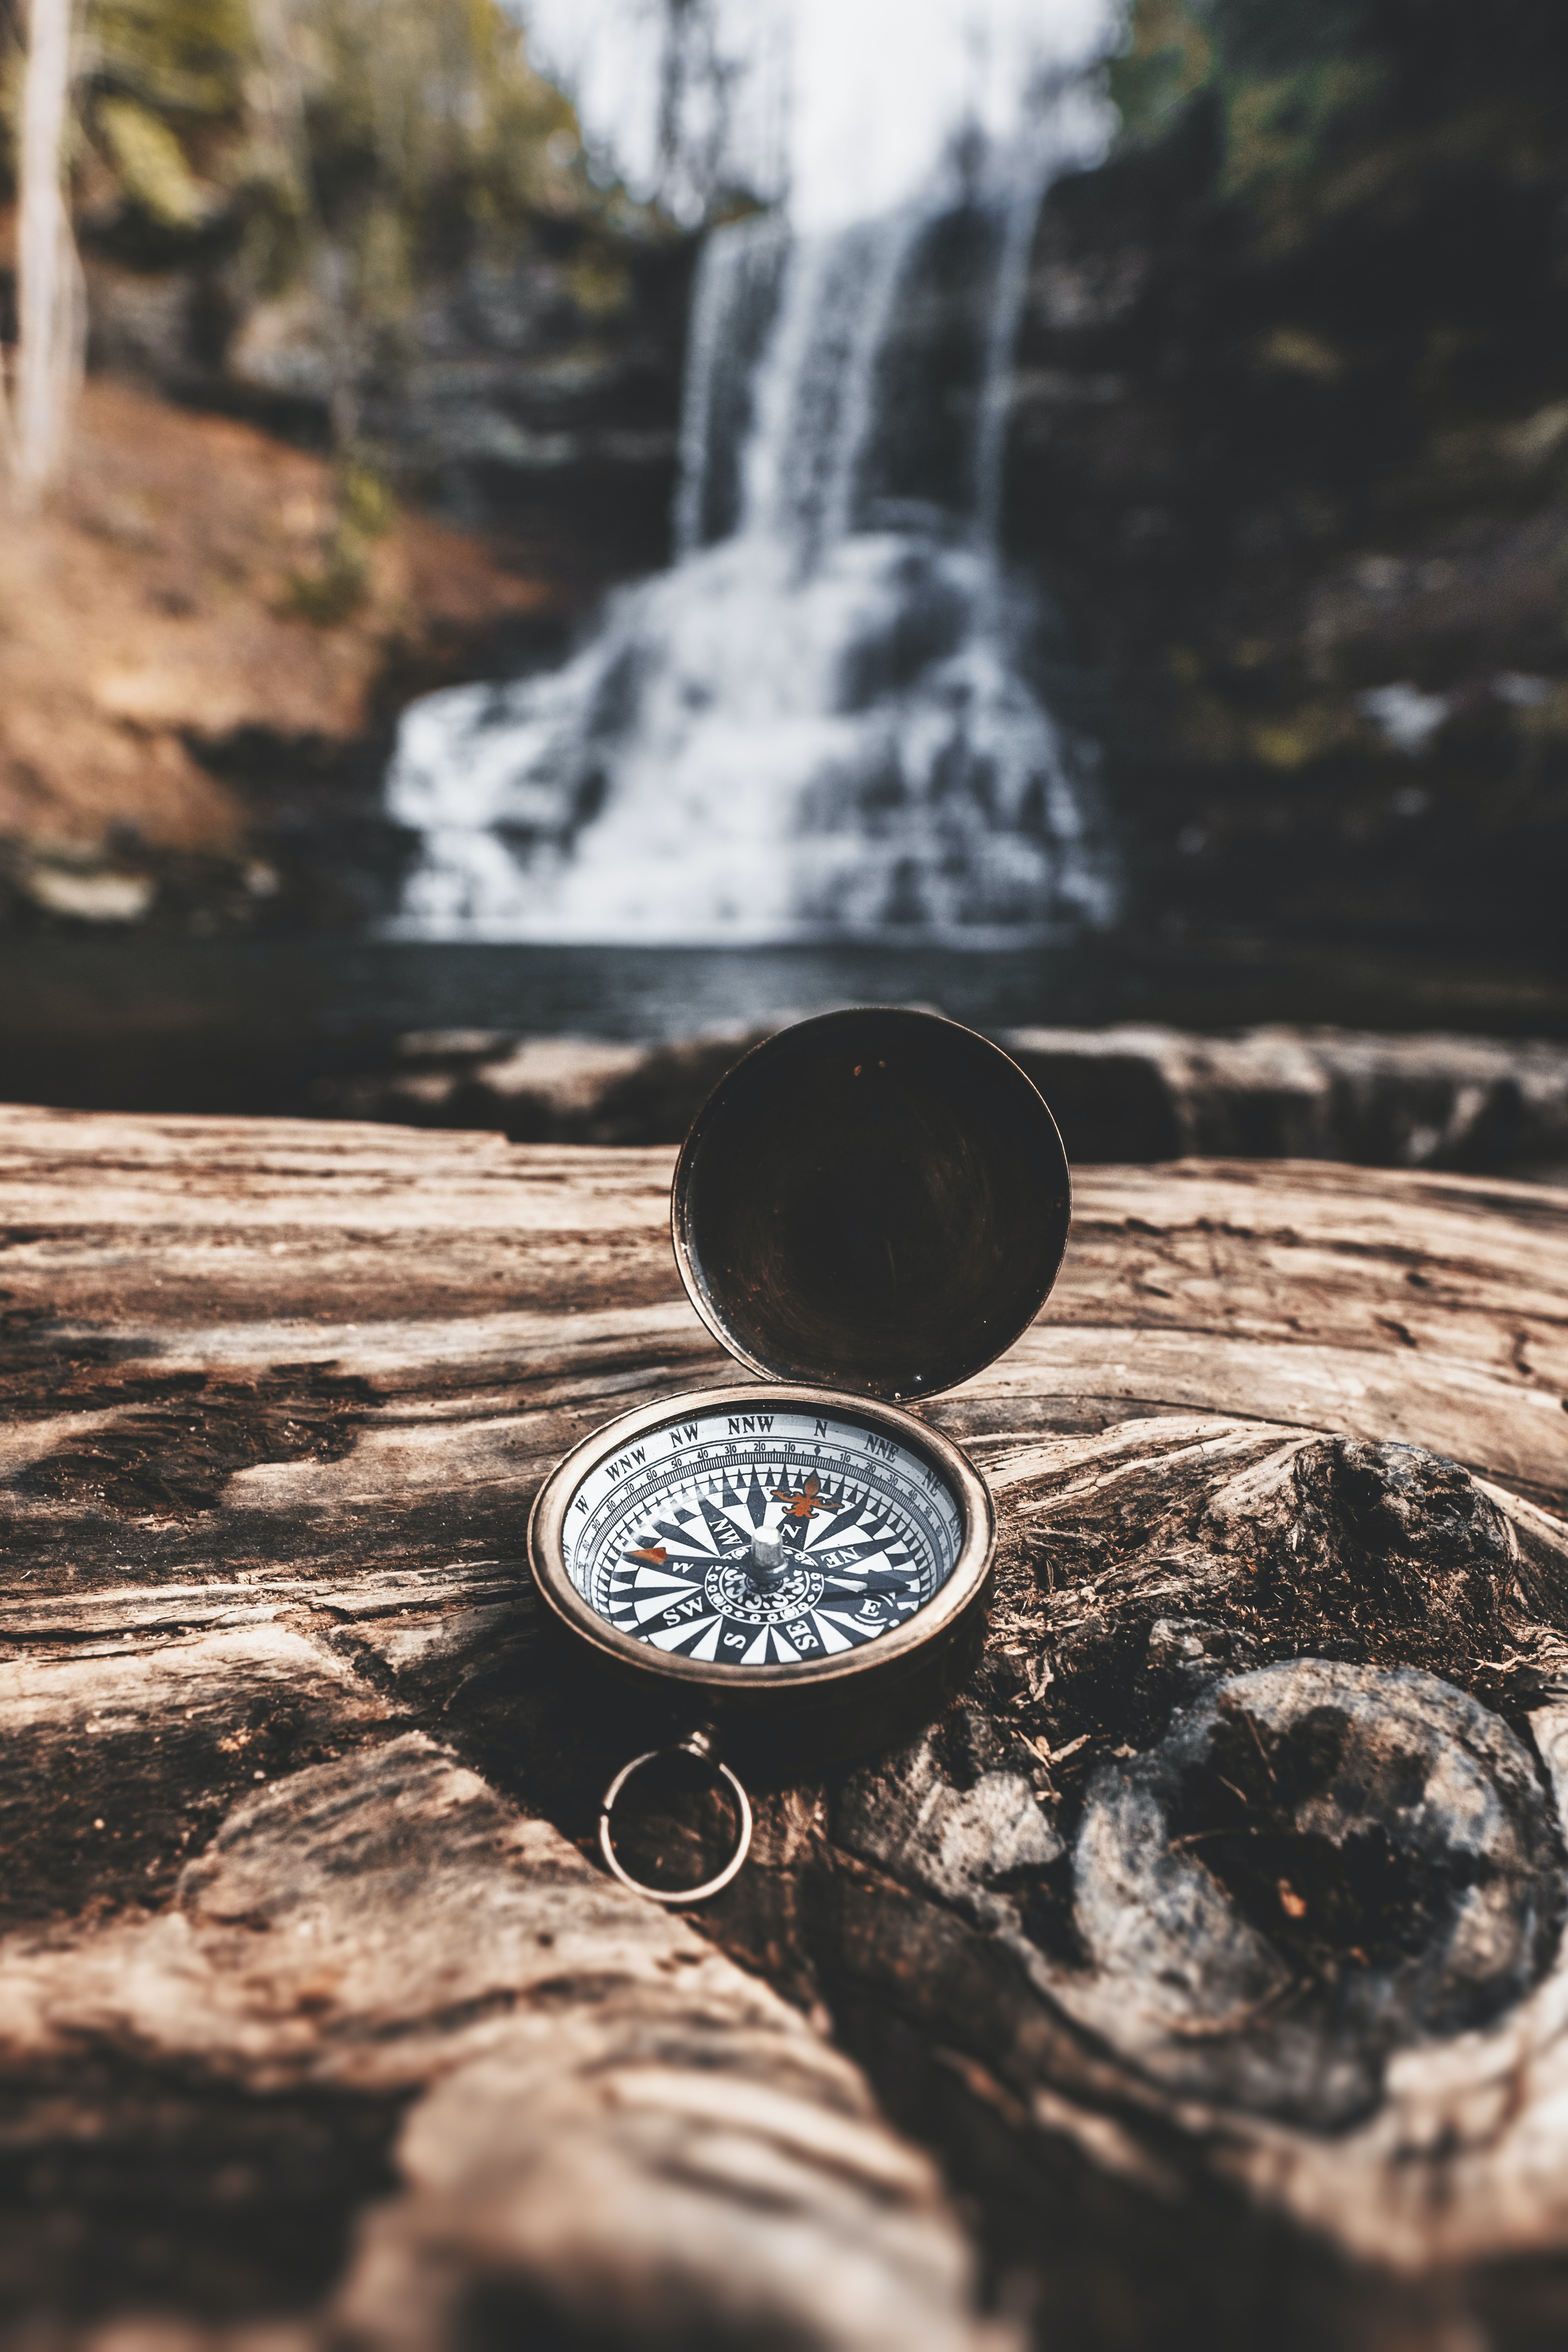 brass-colored compass on brown wooden tree stump in front of waterfalls during daytime